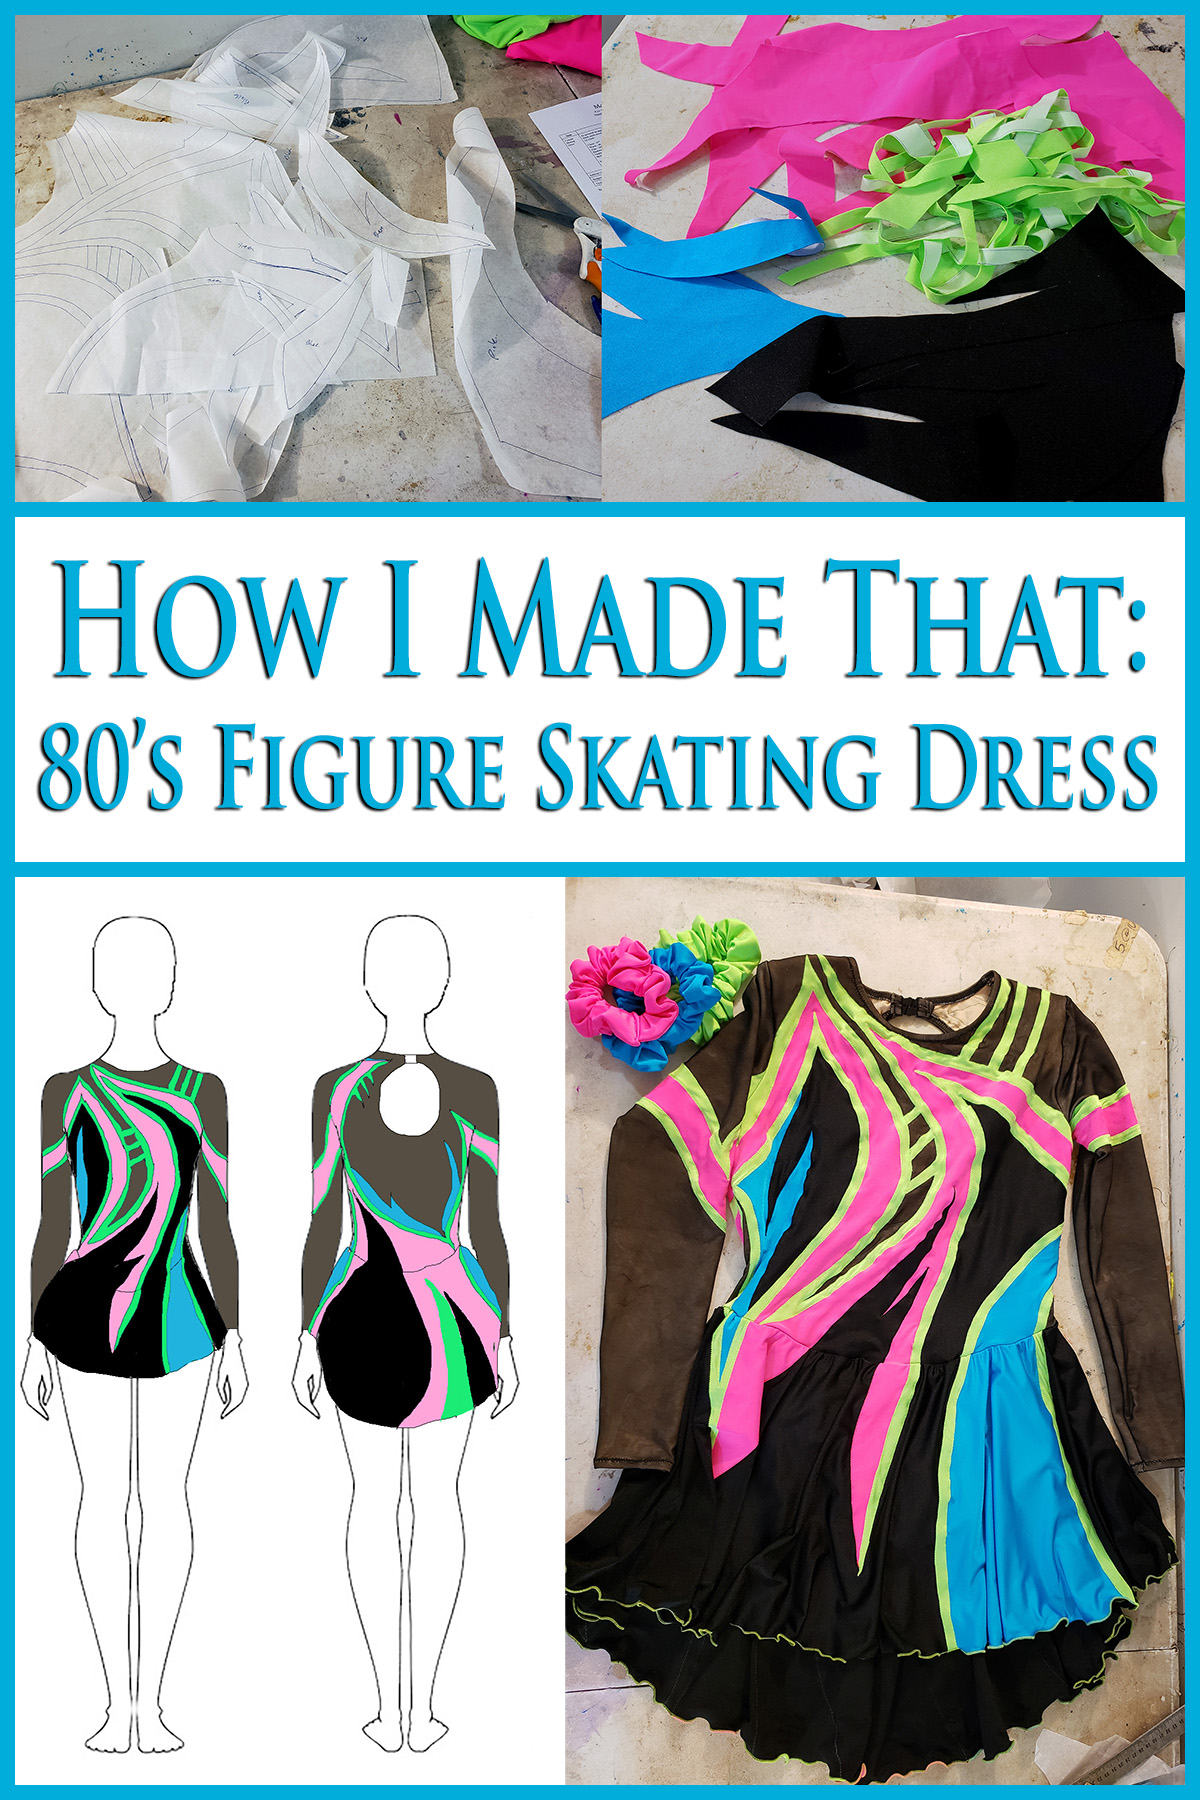 A compilation image showing pattern pieces, cut applique pieces, a sketch of the 80s figure skating dress, and the finished black, blue, pink, and green dress. Blue text saus How I made that: 80's figure skating dress.